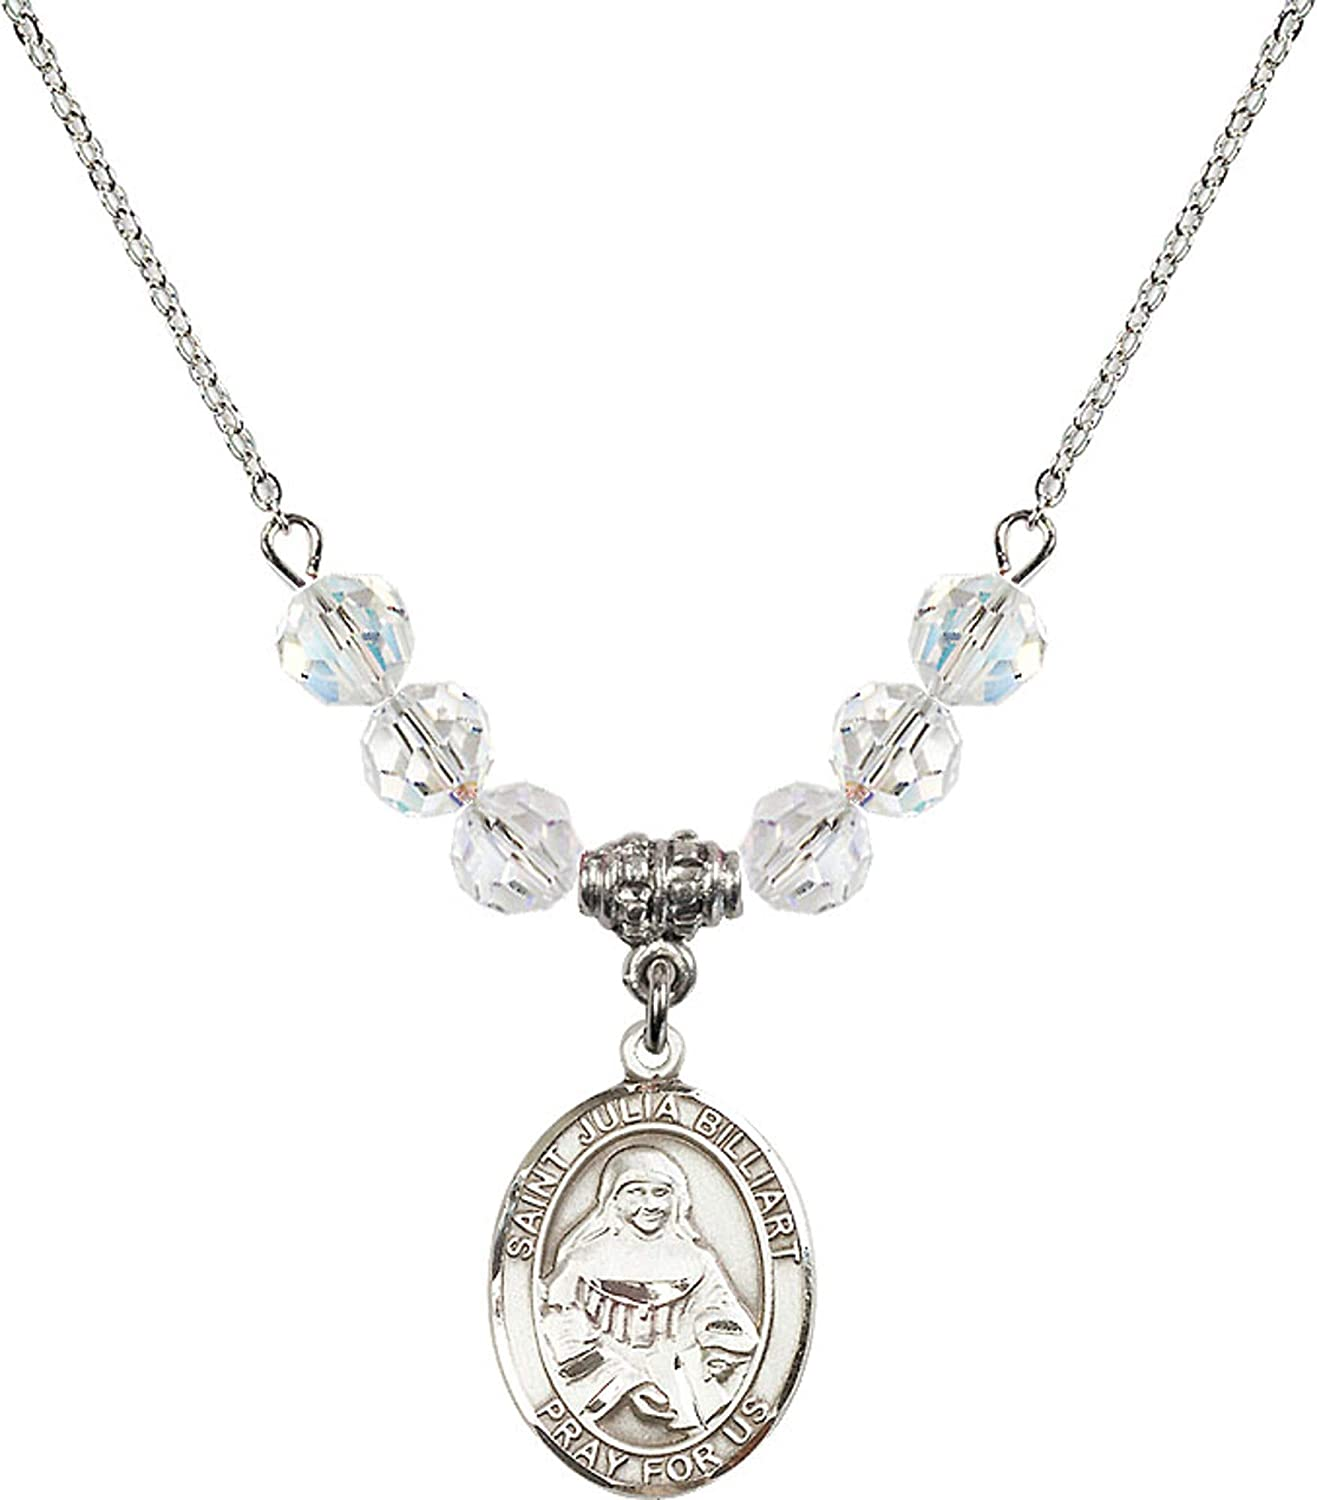 Bonyak Jewelry 18 Inch Rhodium Plated Necklace w// 6mm White April Birth Month Stone Beads and Saint Julia Billiart Charm